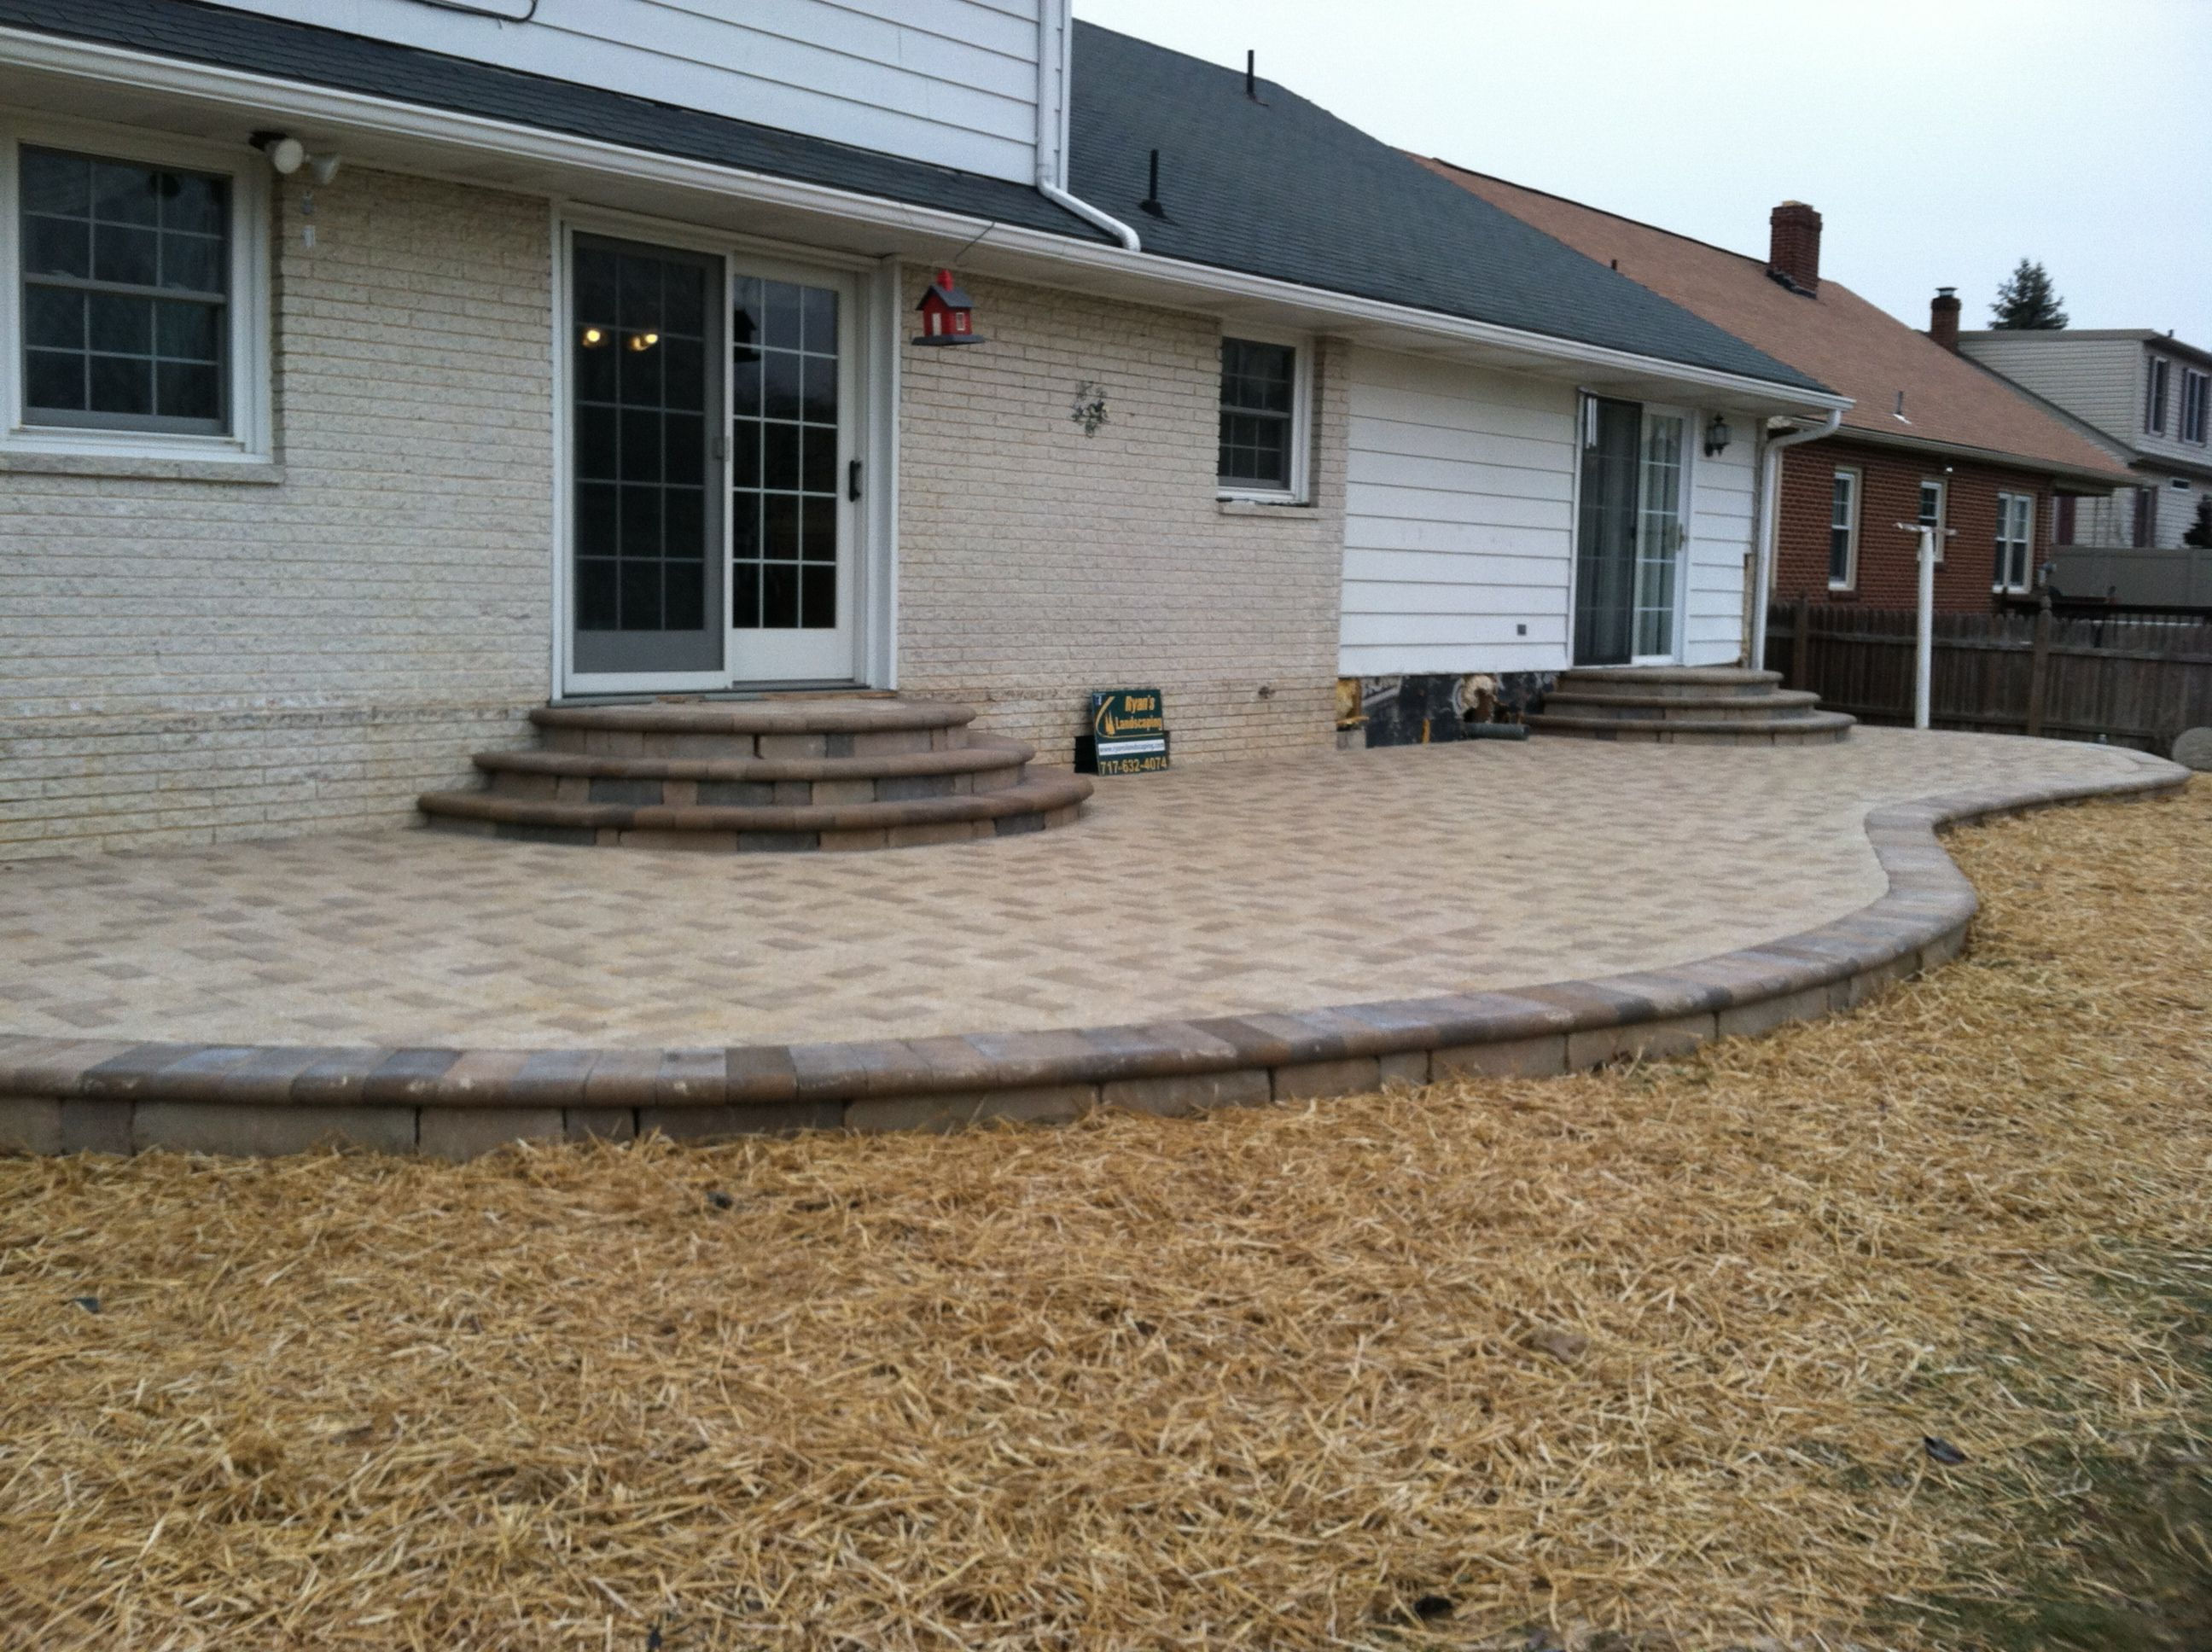 Paver Patios on Pinterest | Concrete Patios, Small Patio ... on Brick Paver Patio Designs id=58769